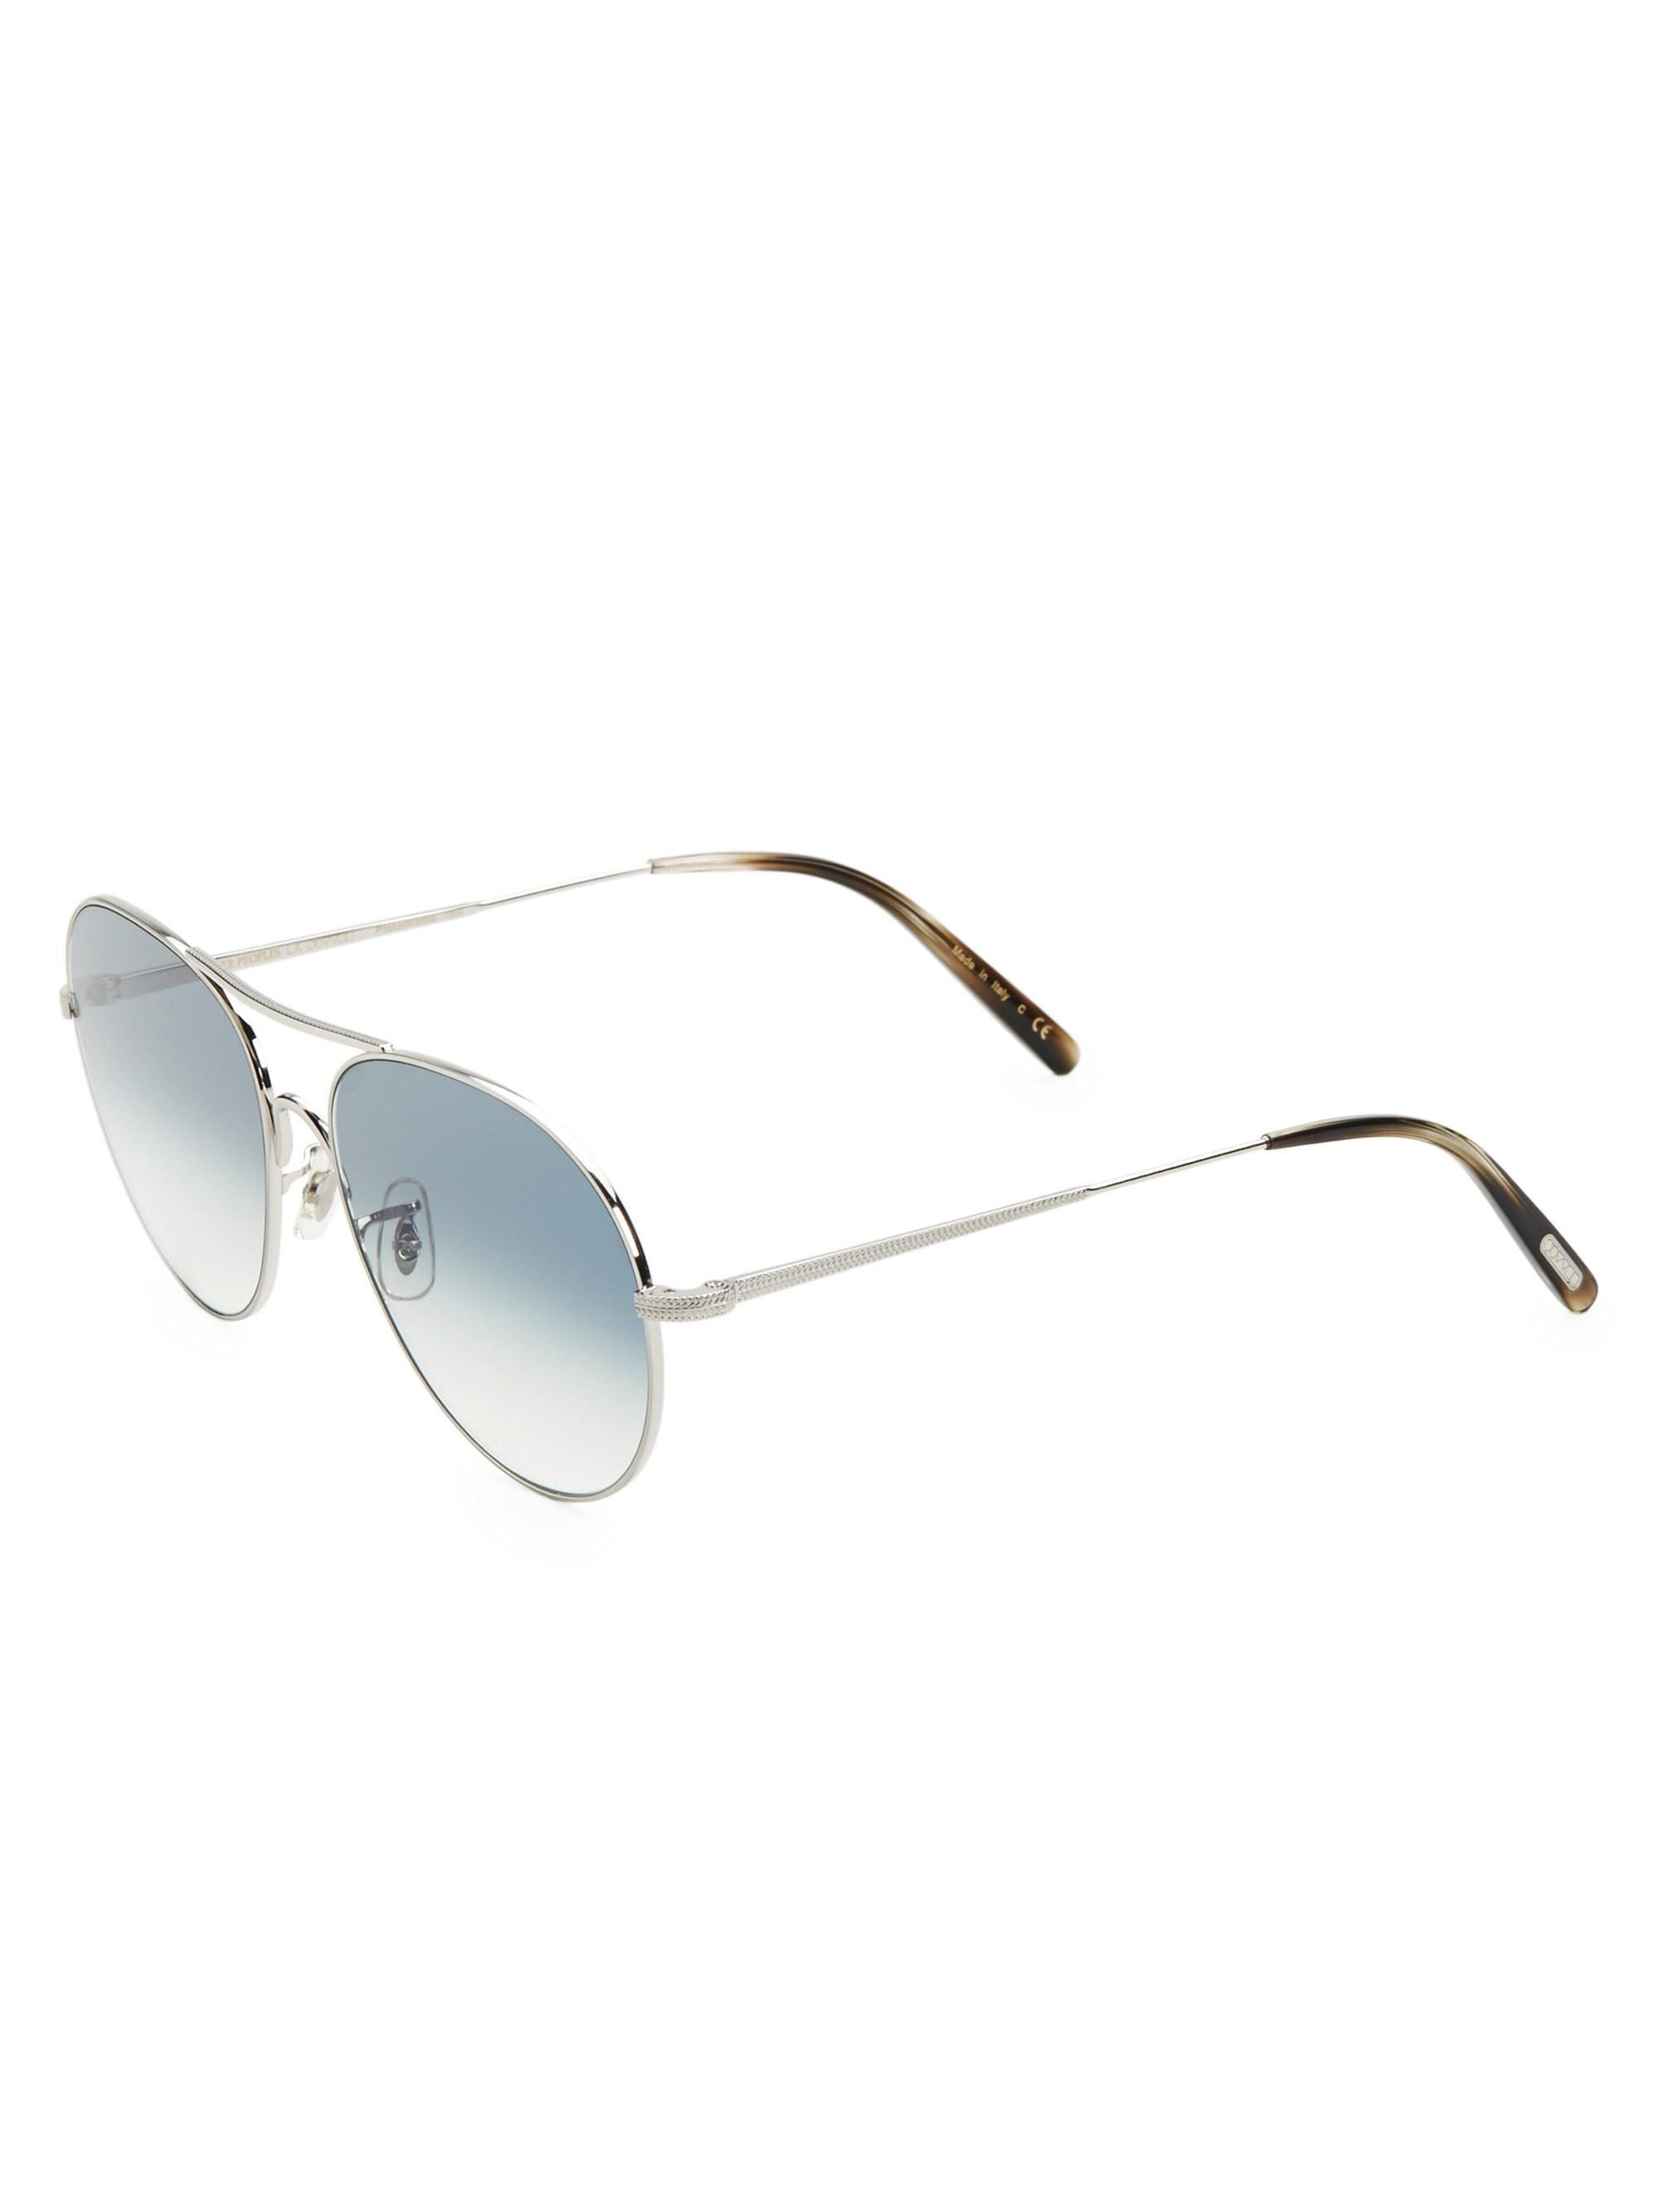 62b4a45bfd3 Oliver Peoples - Metallic Rockmore 58mm Aviator Sunglasses for Men - Lyst.  View fullscreen